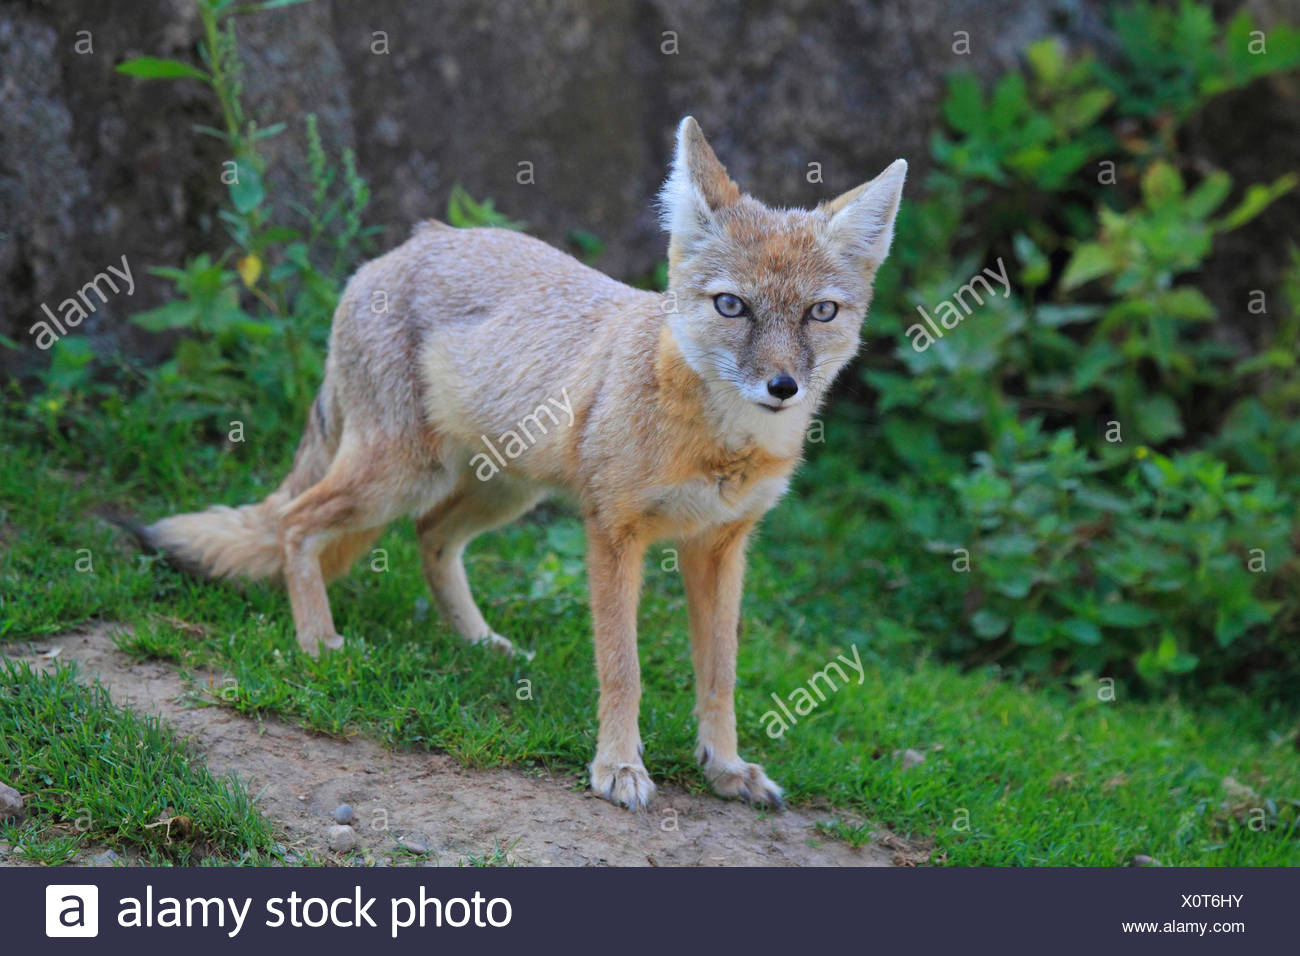 Corsac fox (Vulpes corsac), standing in a meadow - Stock Image